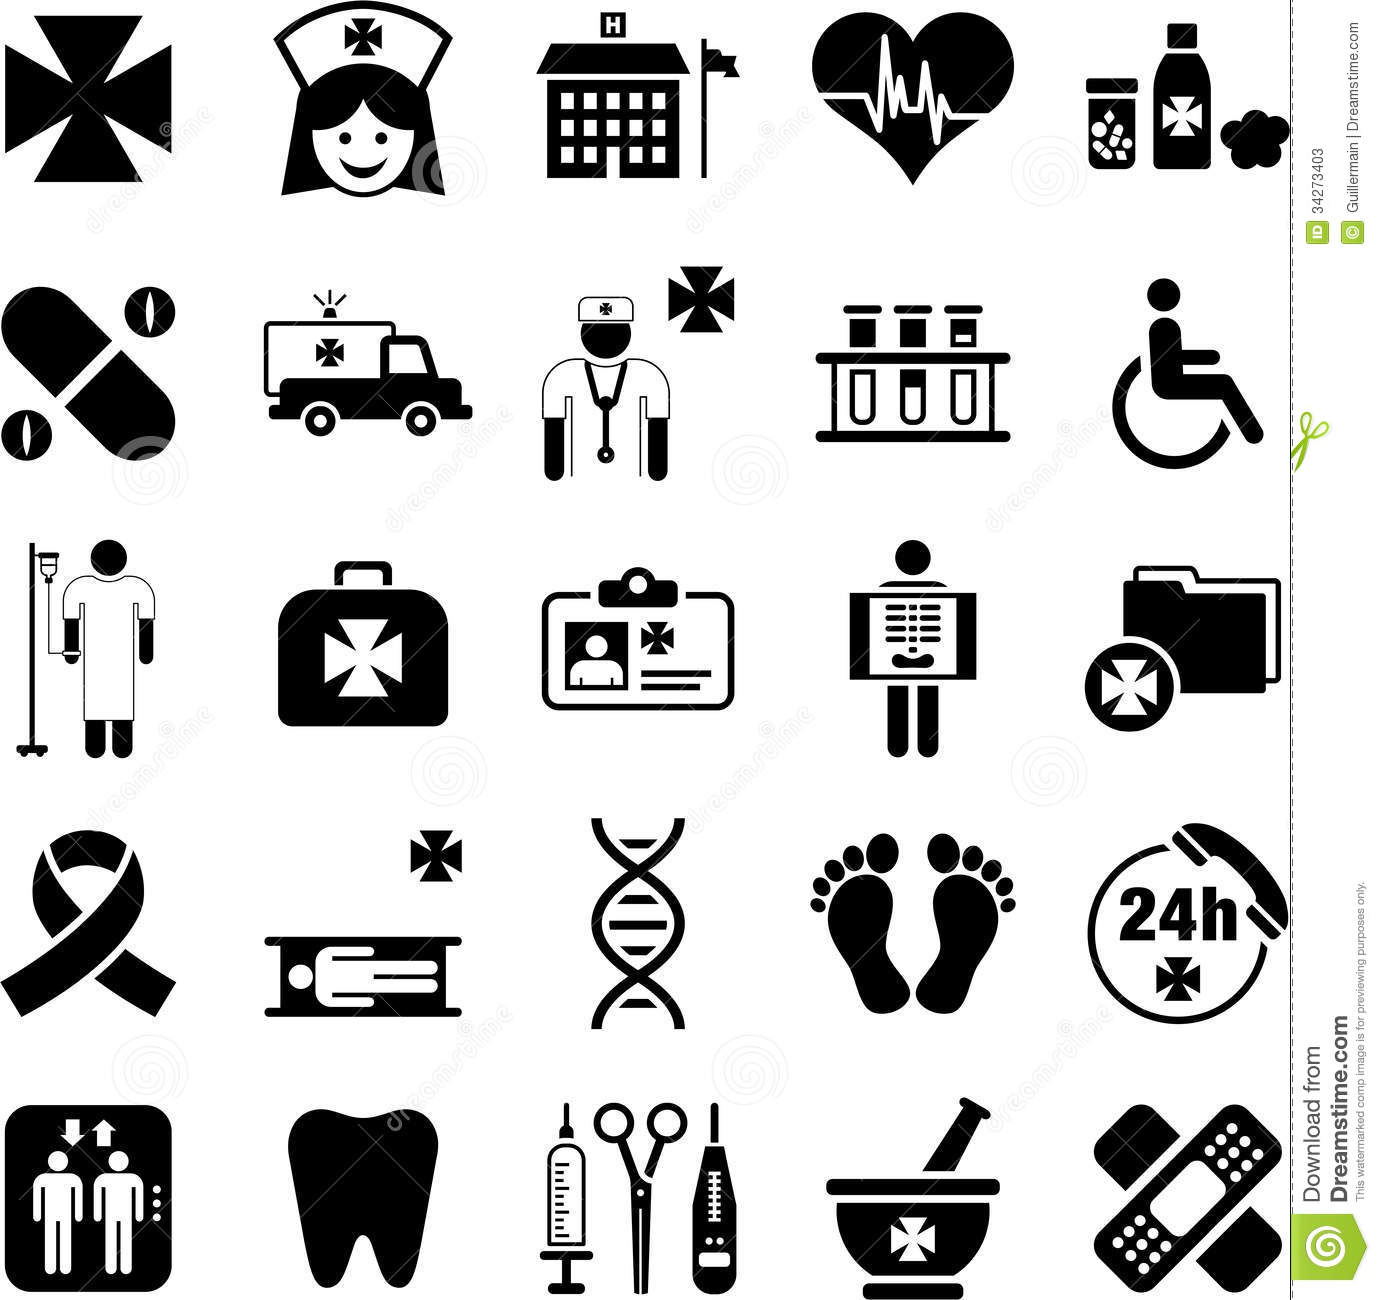 Hospital, Health And Medicine Icons Stock Photos - Image: 34273403